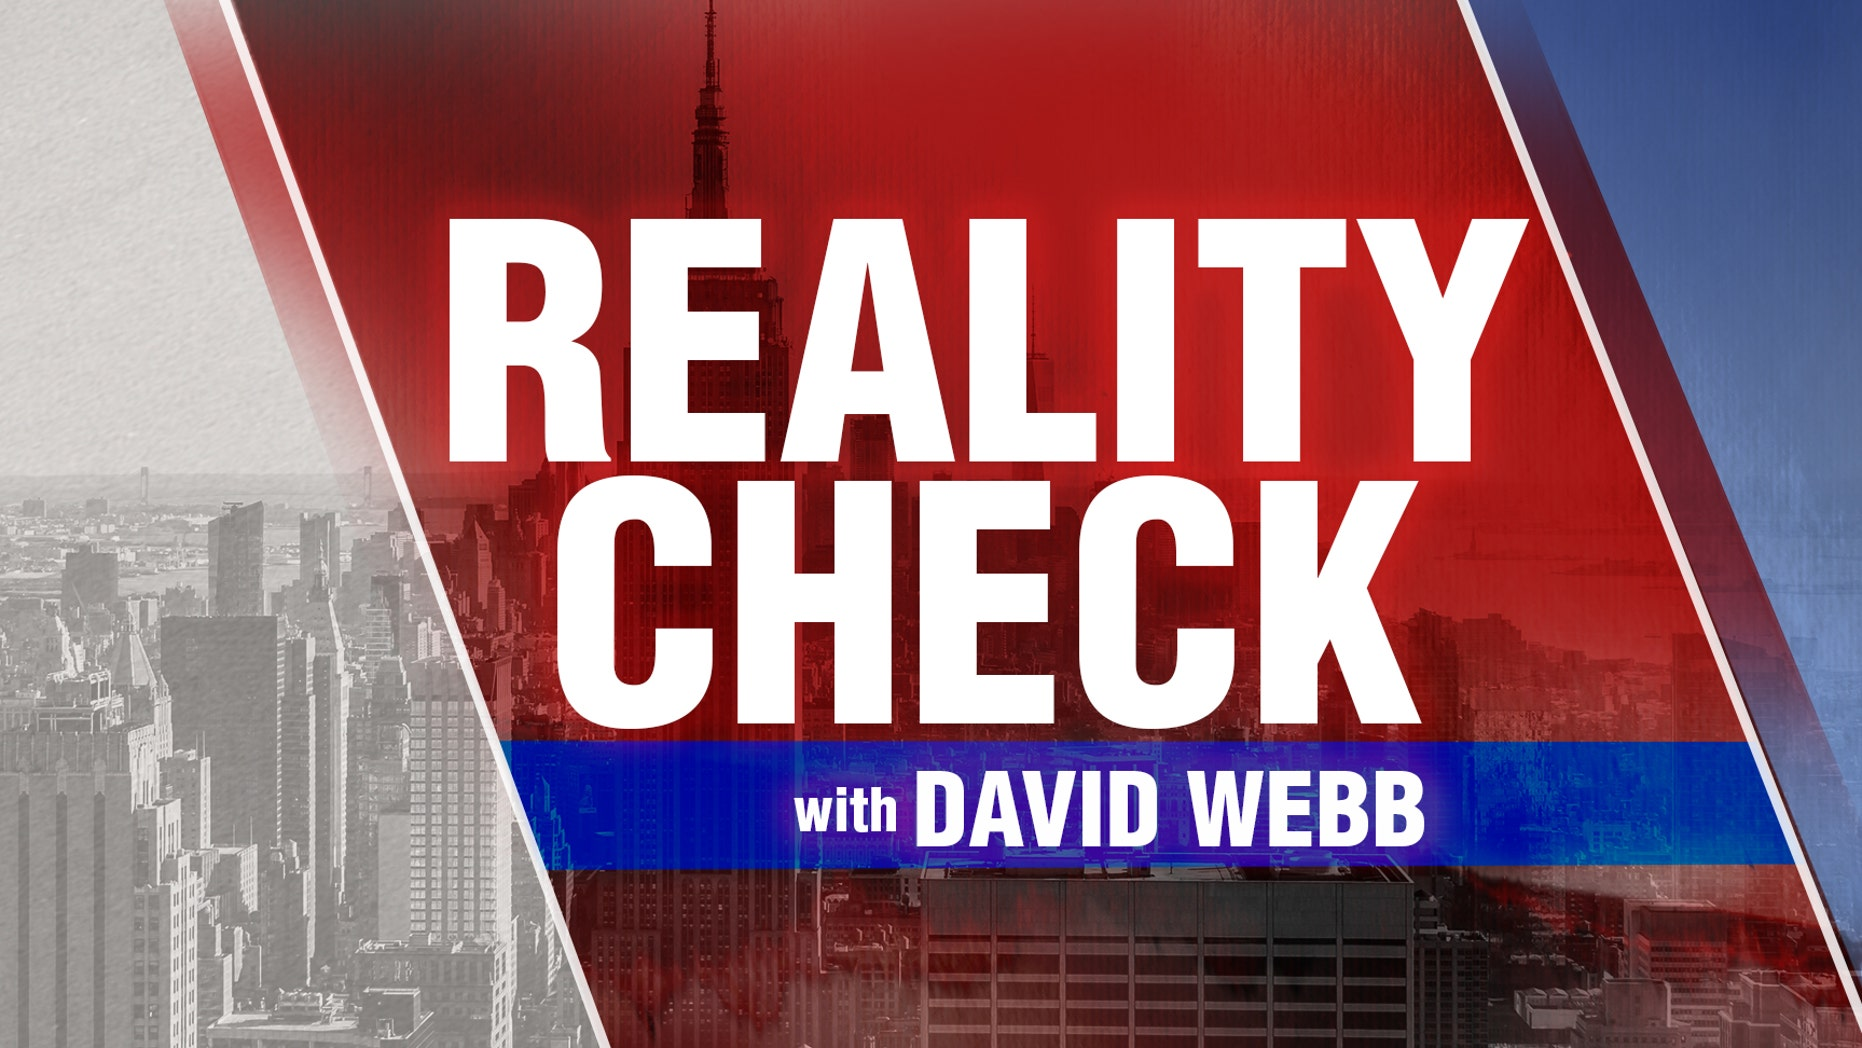 Westlake Legal Group REALITY_CHECK_ENDFRAME David Webb: Opportunity is the American dream fox-news/opinion fox-news/fox-nation fox news fnc/opinion fnc David Webb article 4ec43df5-f5c2-545e-9913-8da9e512ec65